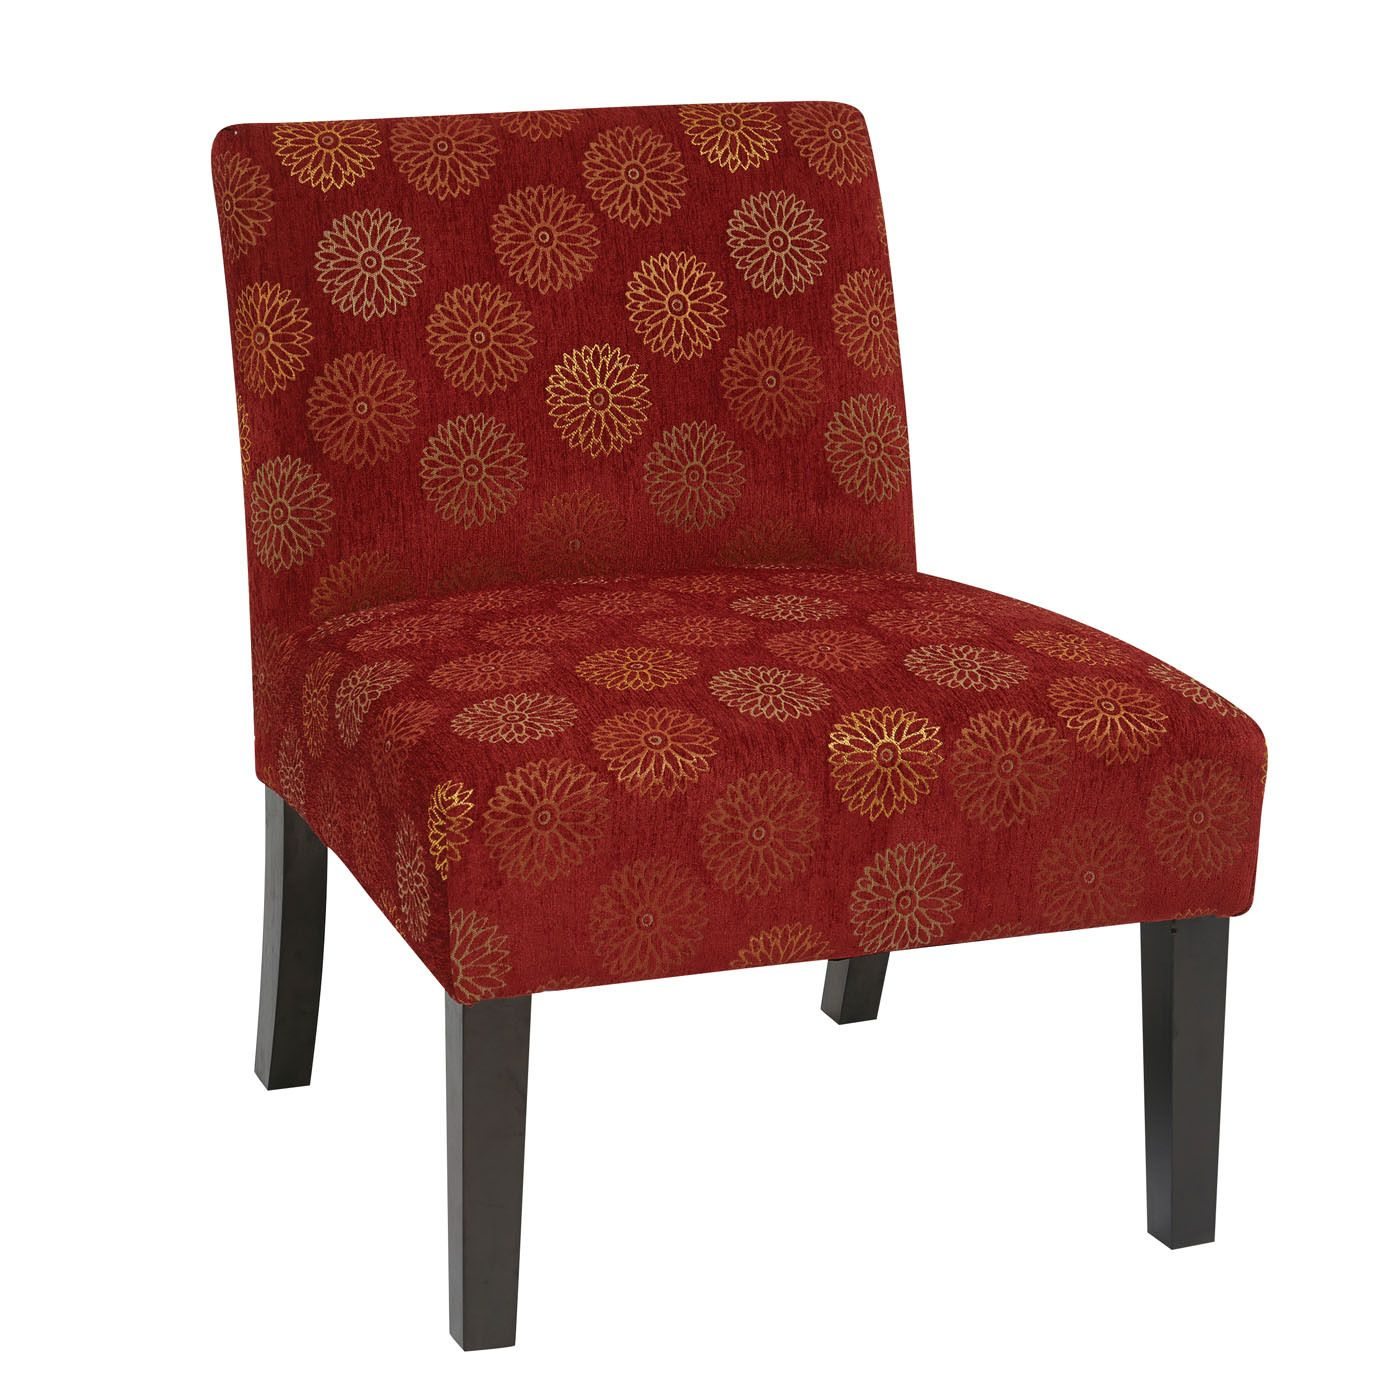 Laguna Accent Chair Shopko Com Accent Chairs Under 100 Accent Chairs Wayfair Living Room Chairs